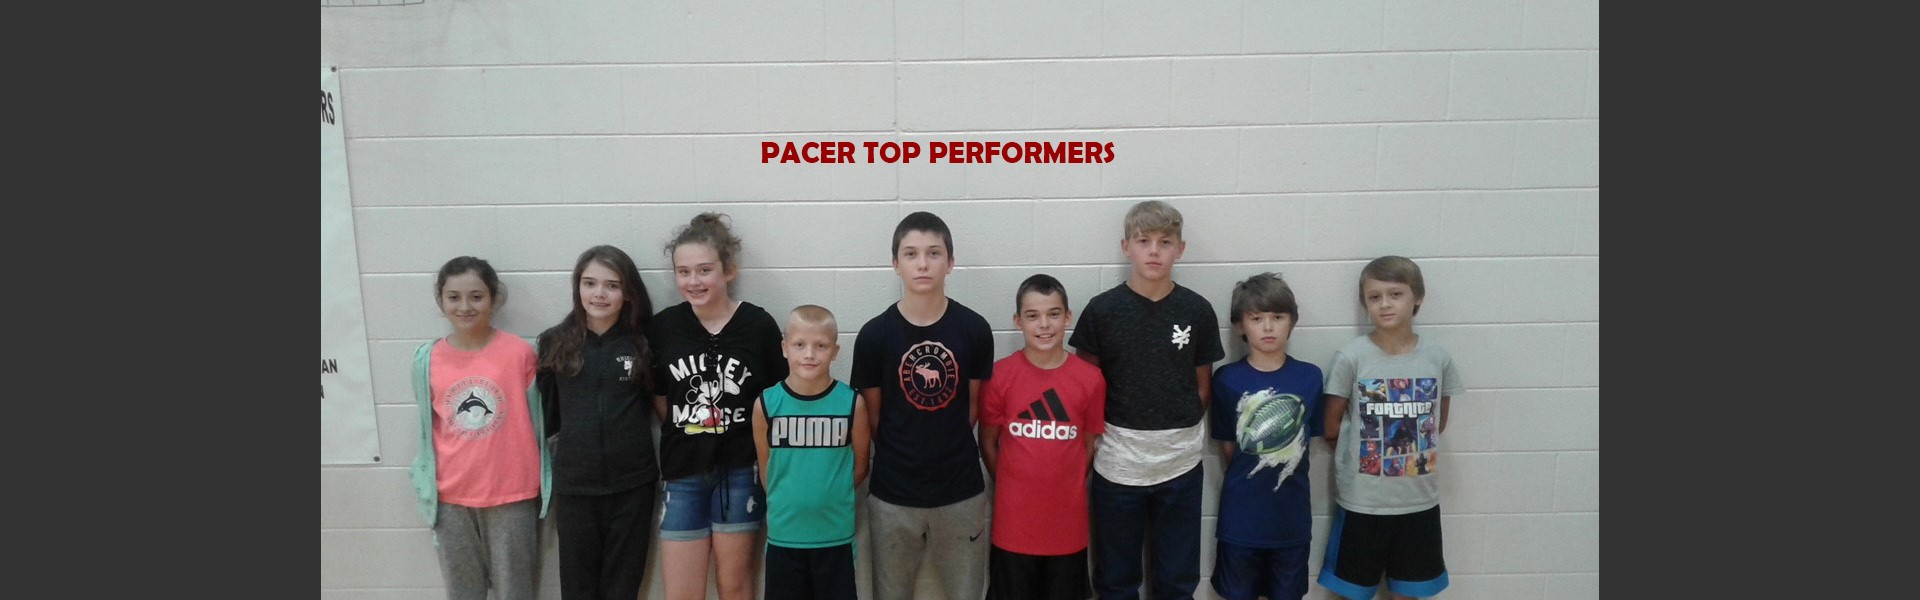 PACER TOP PERFORMERS